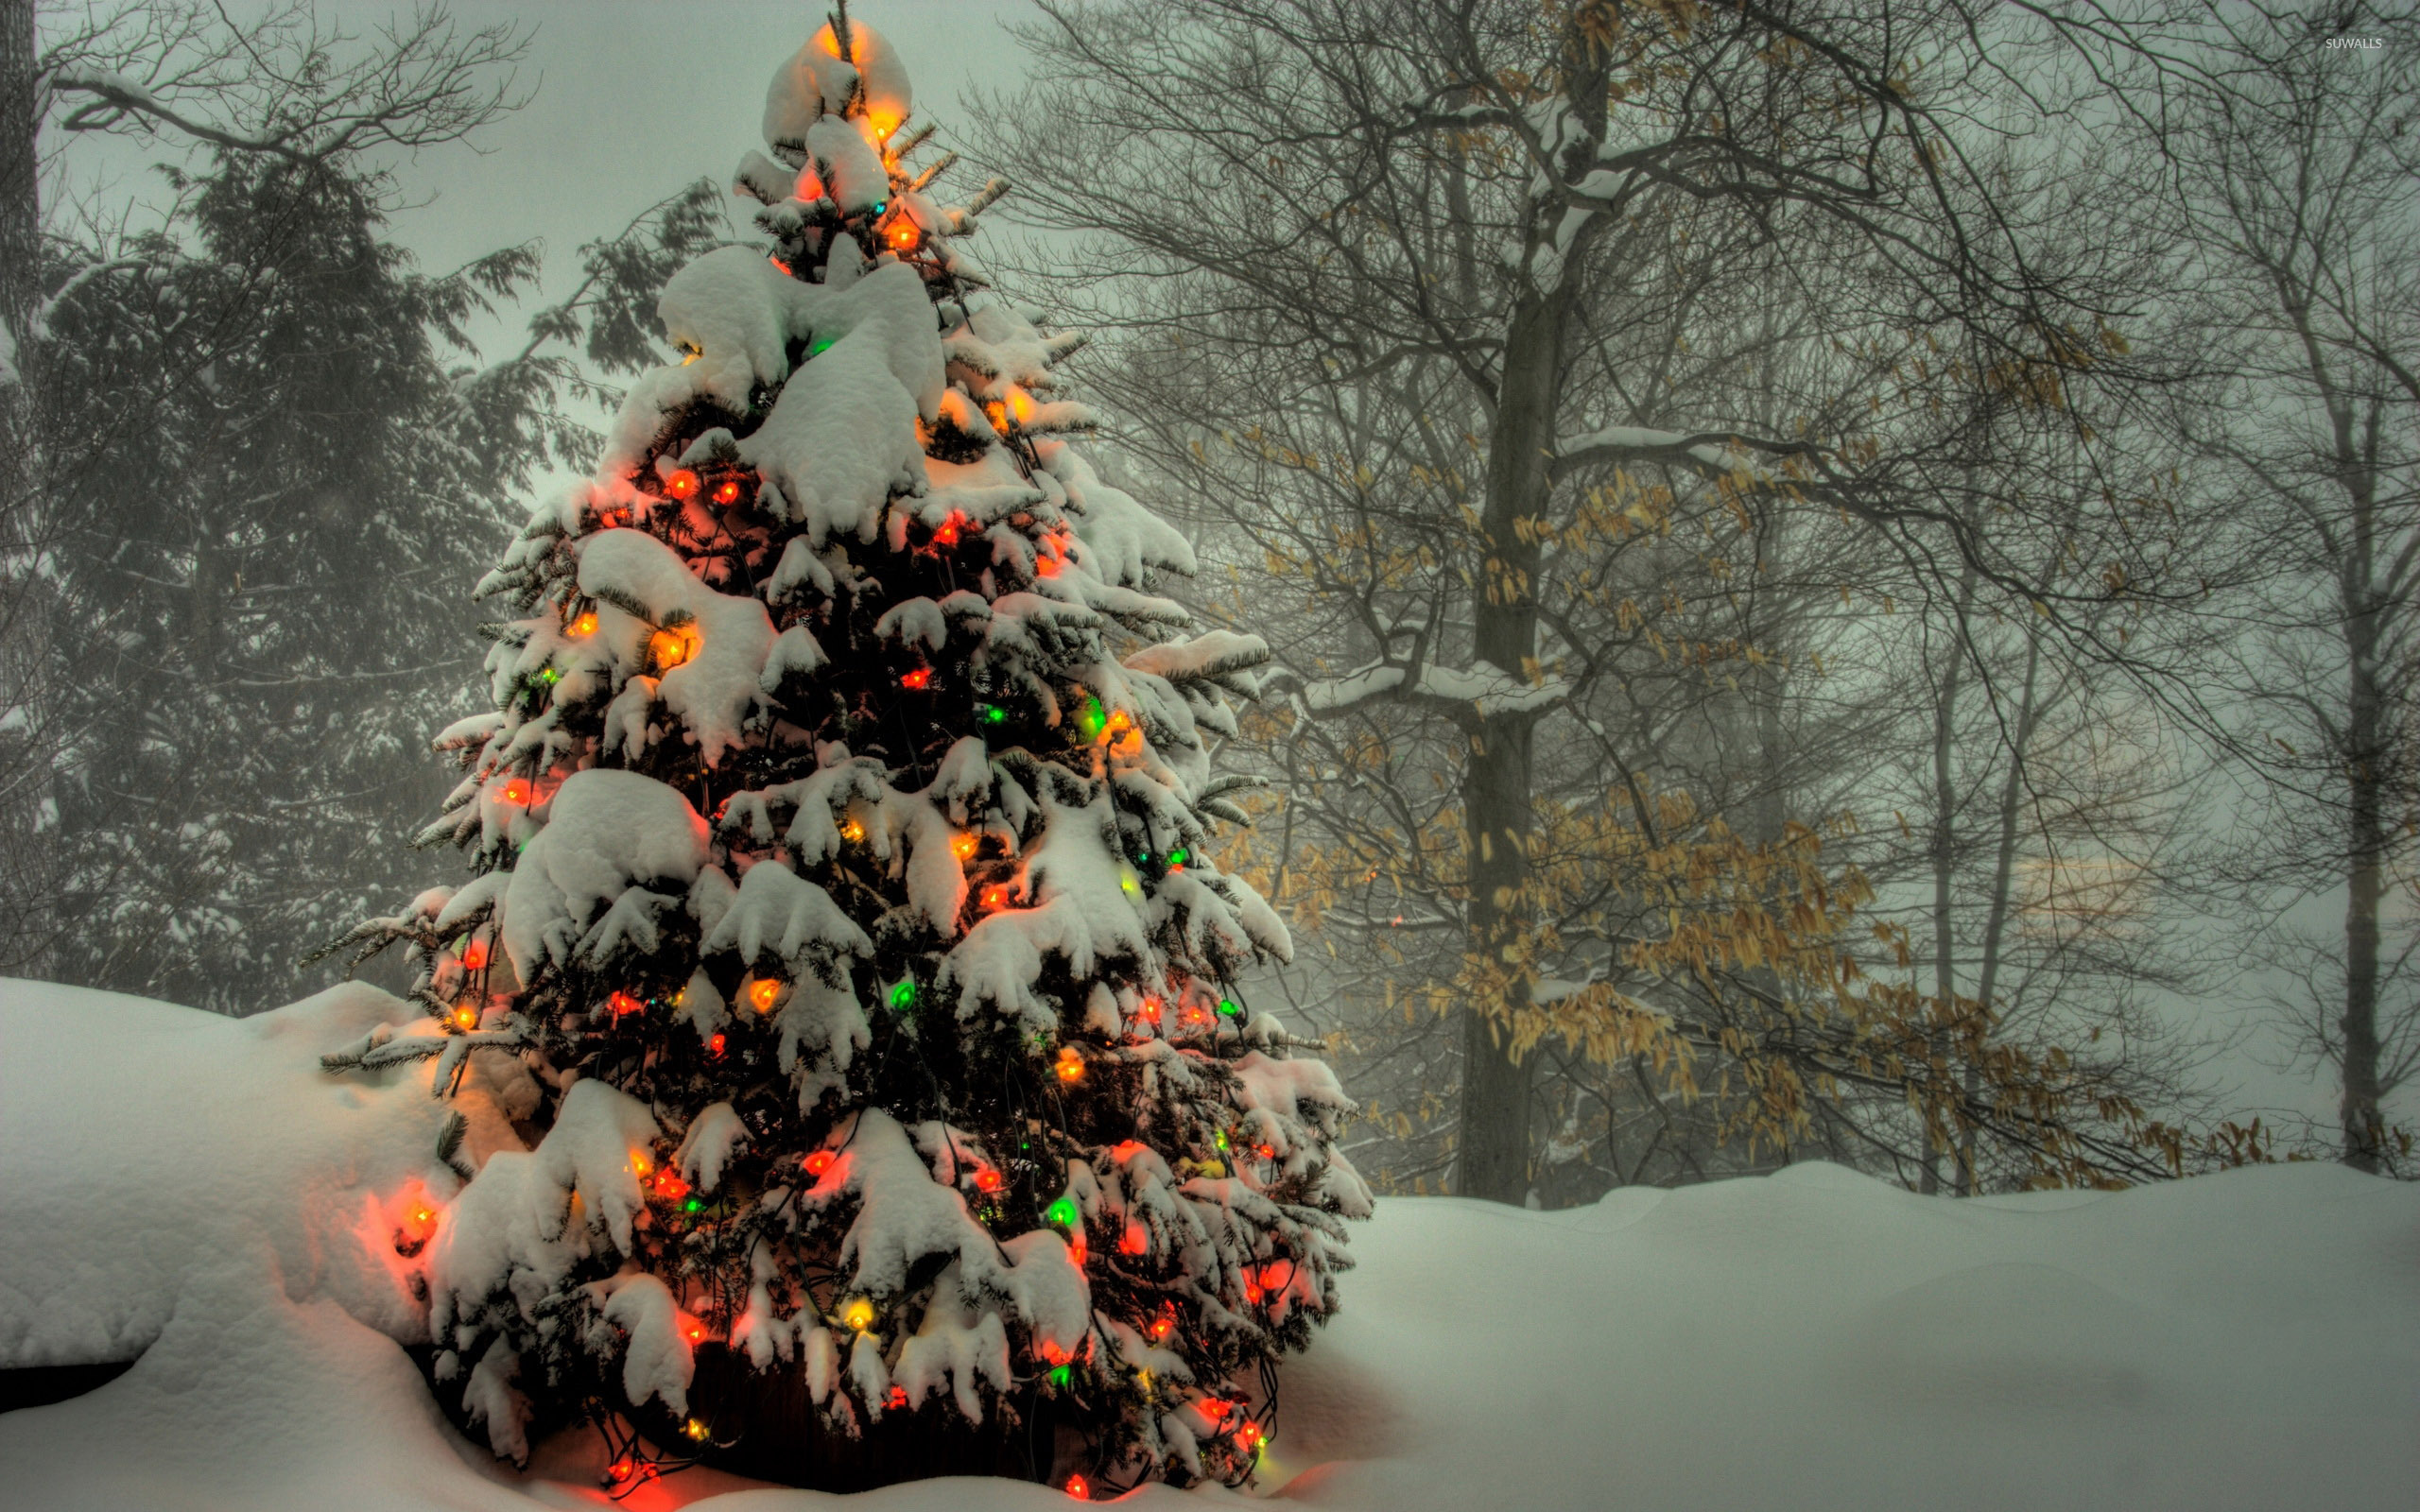 christmas tree shining in the snowy forest wallpaper - holiday